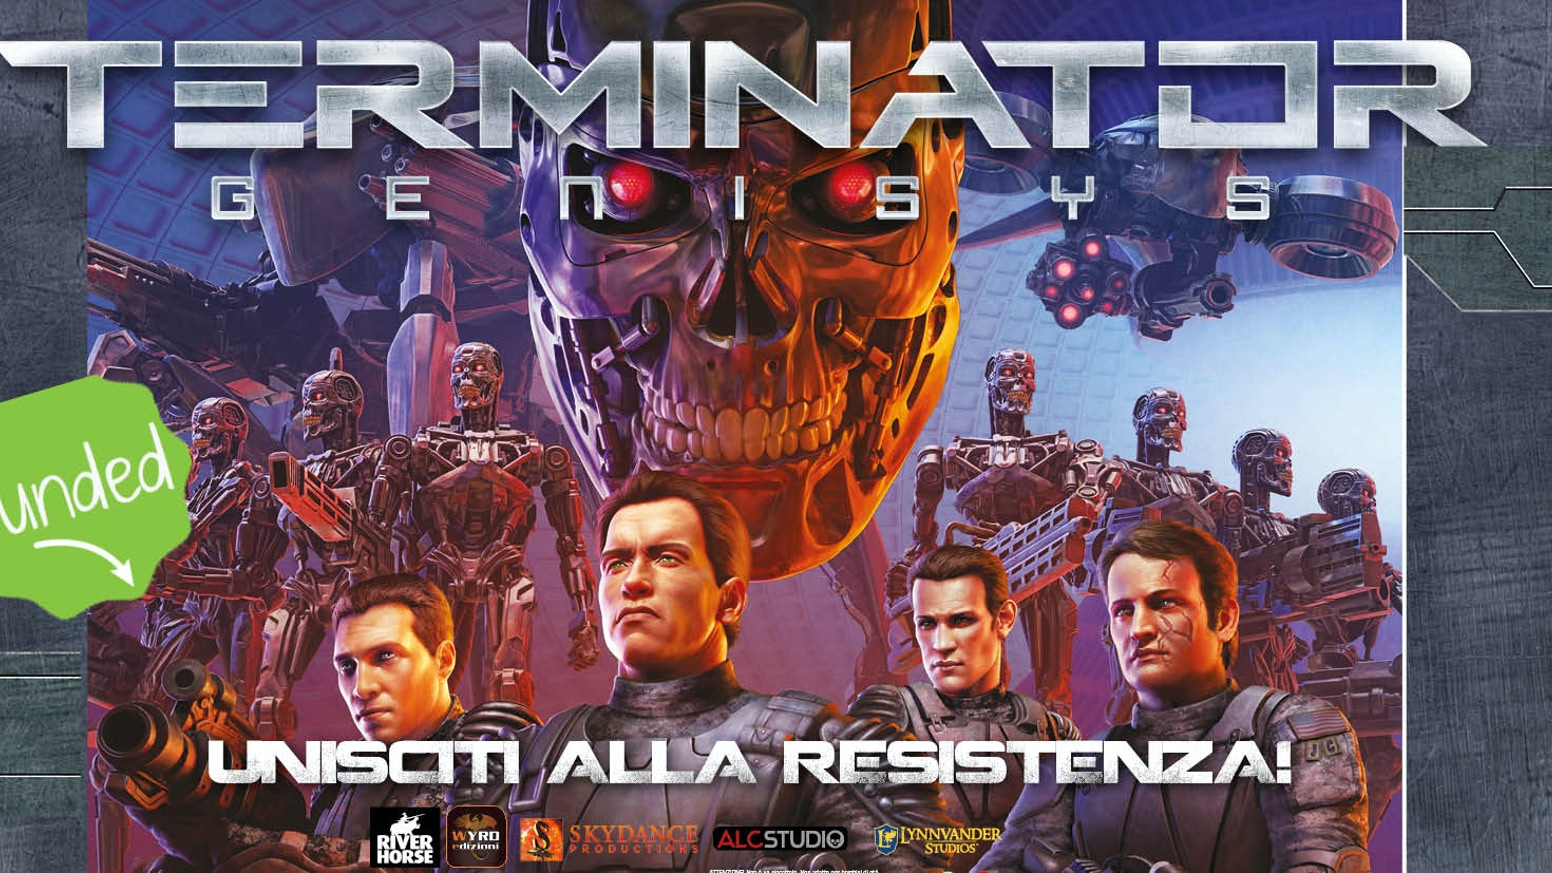 RISE OF THE RESISTANCE E FALL OF SKYNET